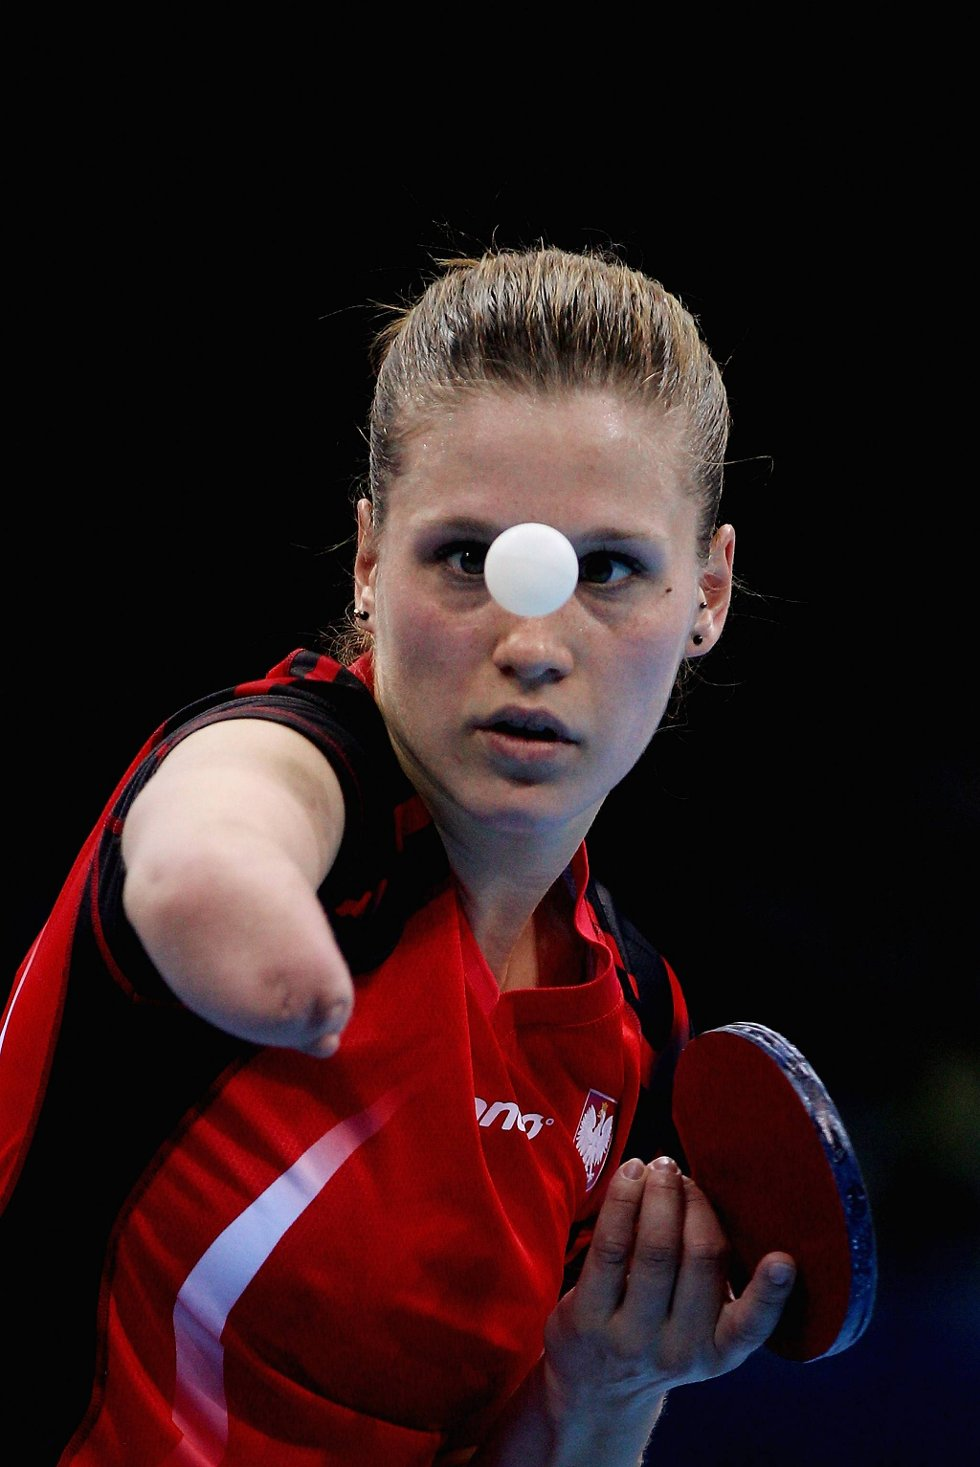 Enarmede polske Natalia Partyka har imponert alle med sine bordtennisferdigheter.  (Foto: Feng Li, Getty Images/All Over Press/ANB)